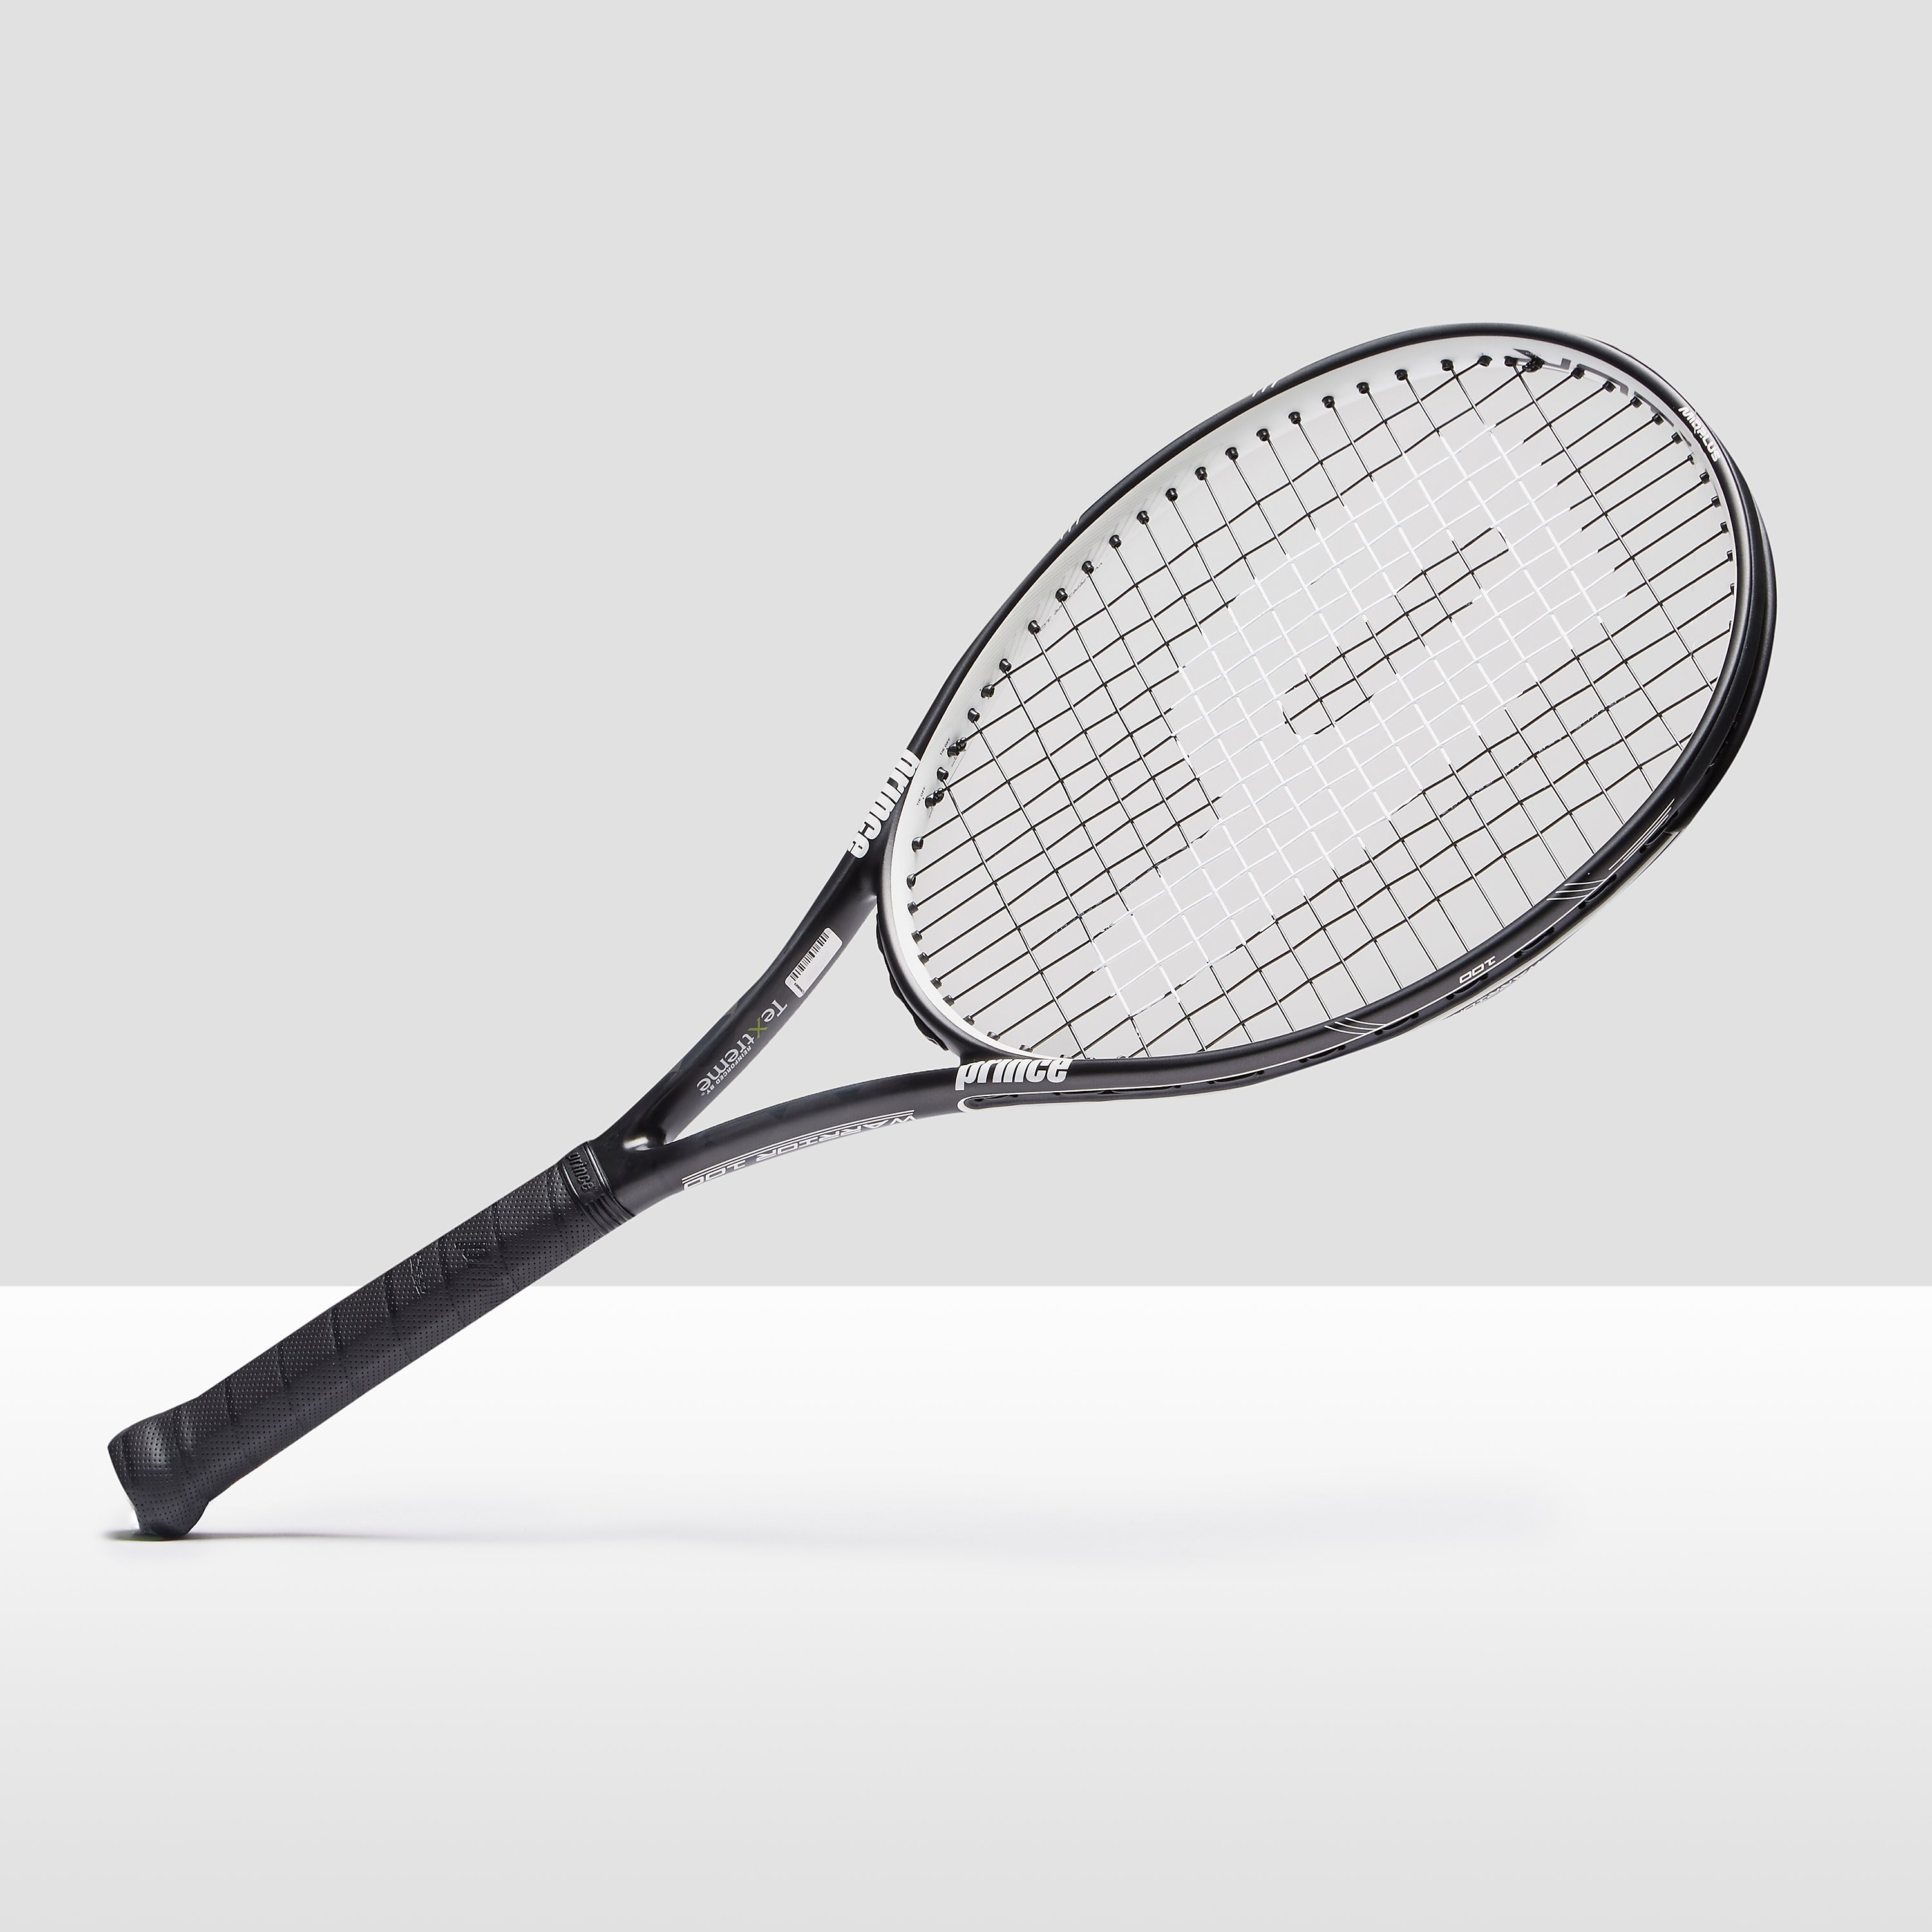 Prince Warrior 100 Tennis Racket